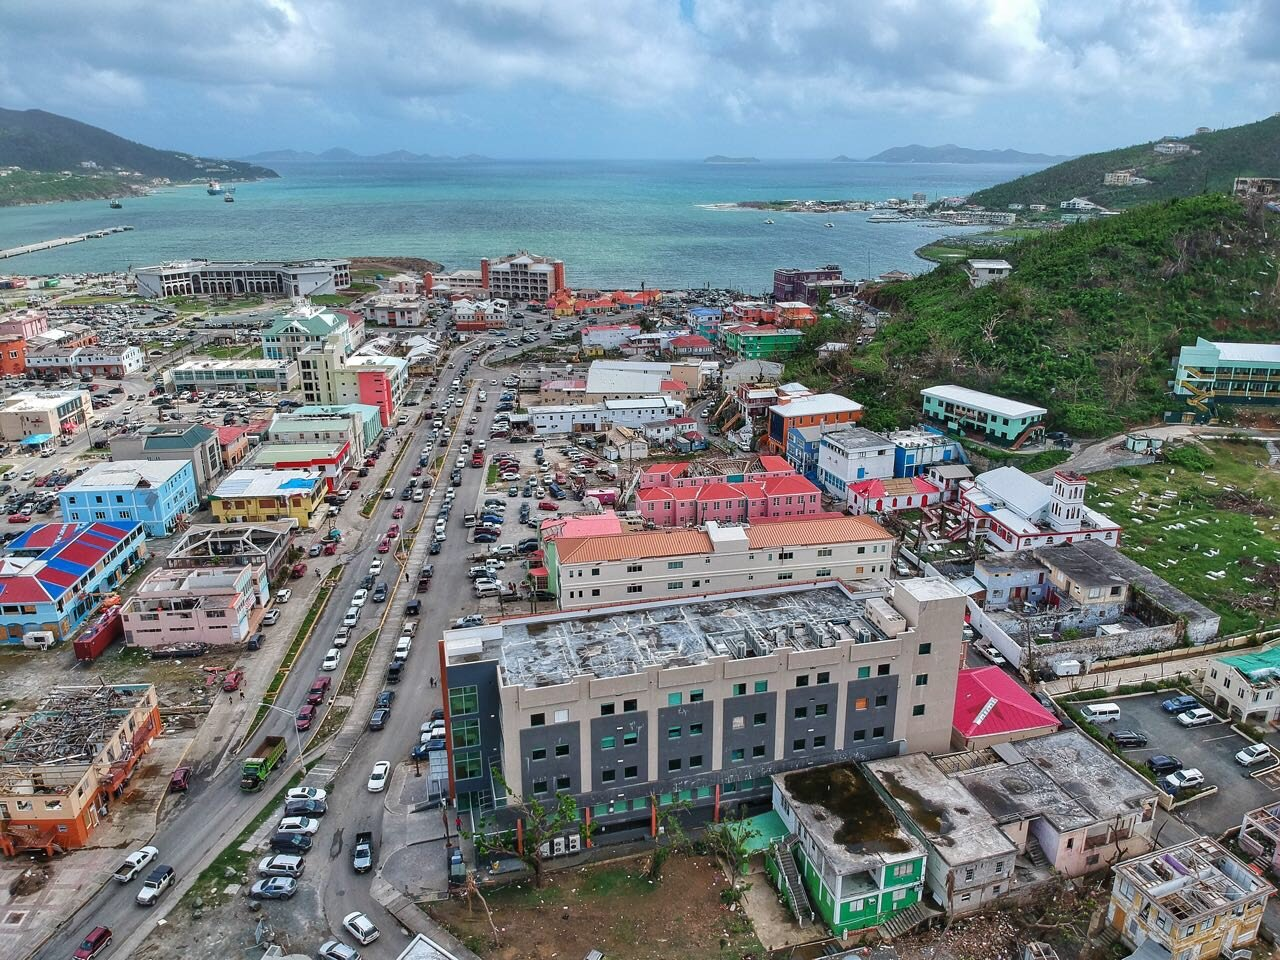 Aerial Shot of Road Town in Tortola - photo by Alton Bertie